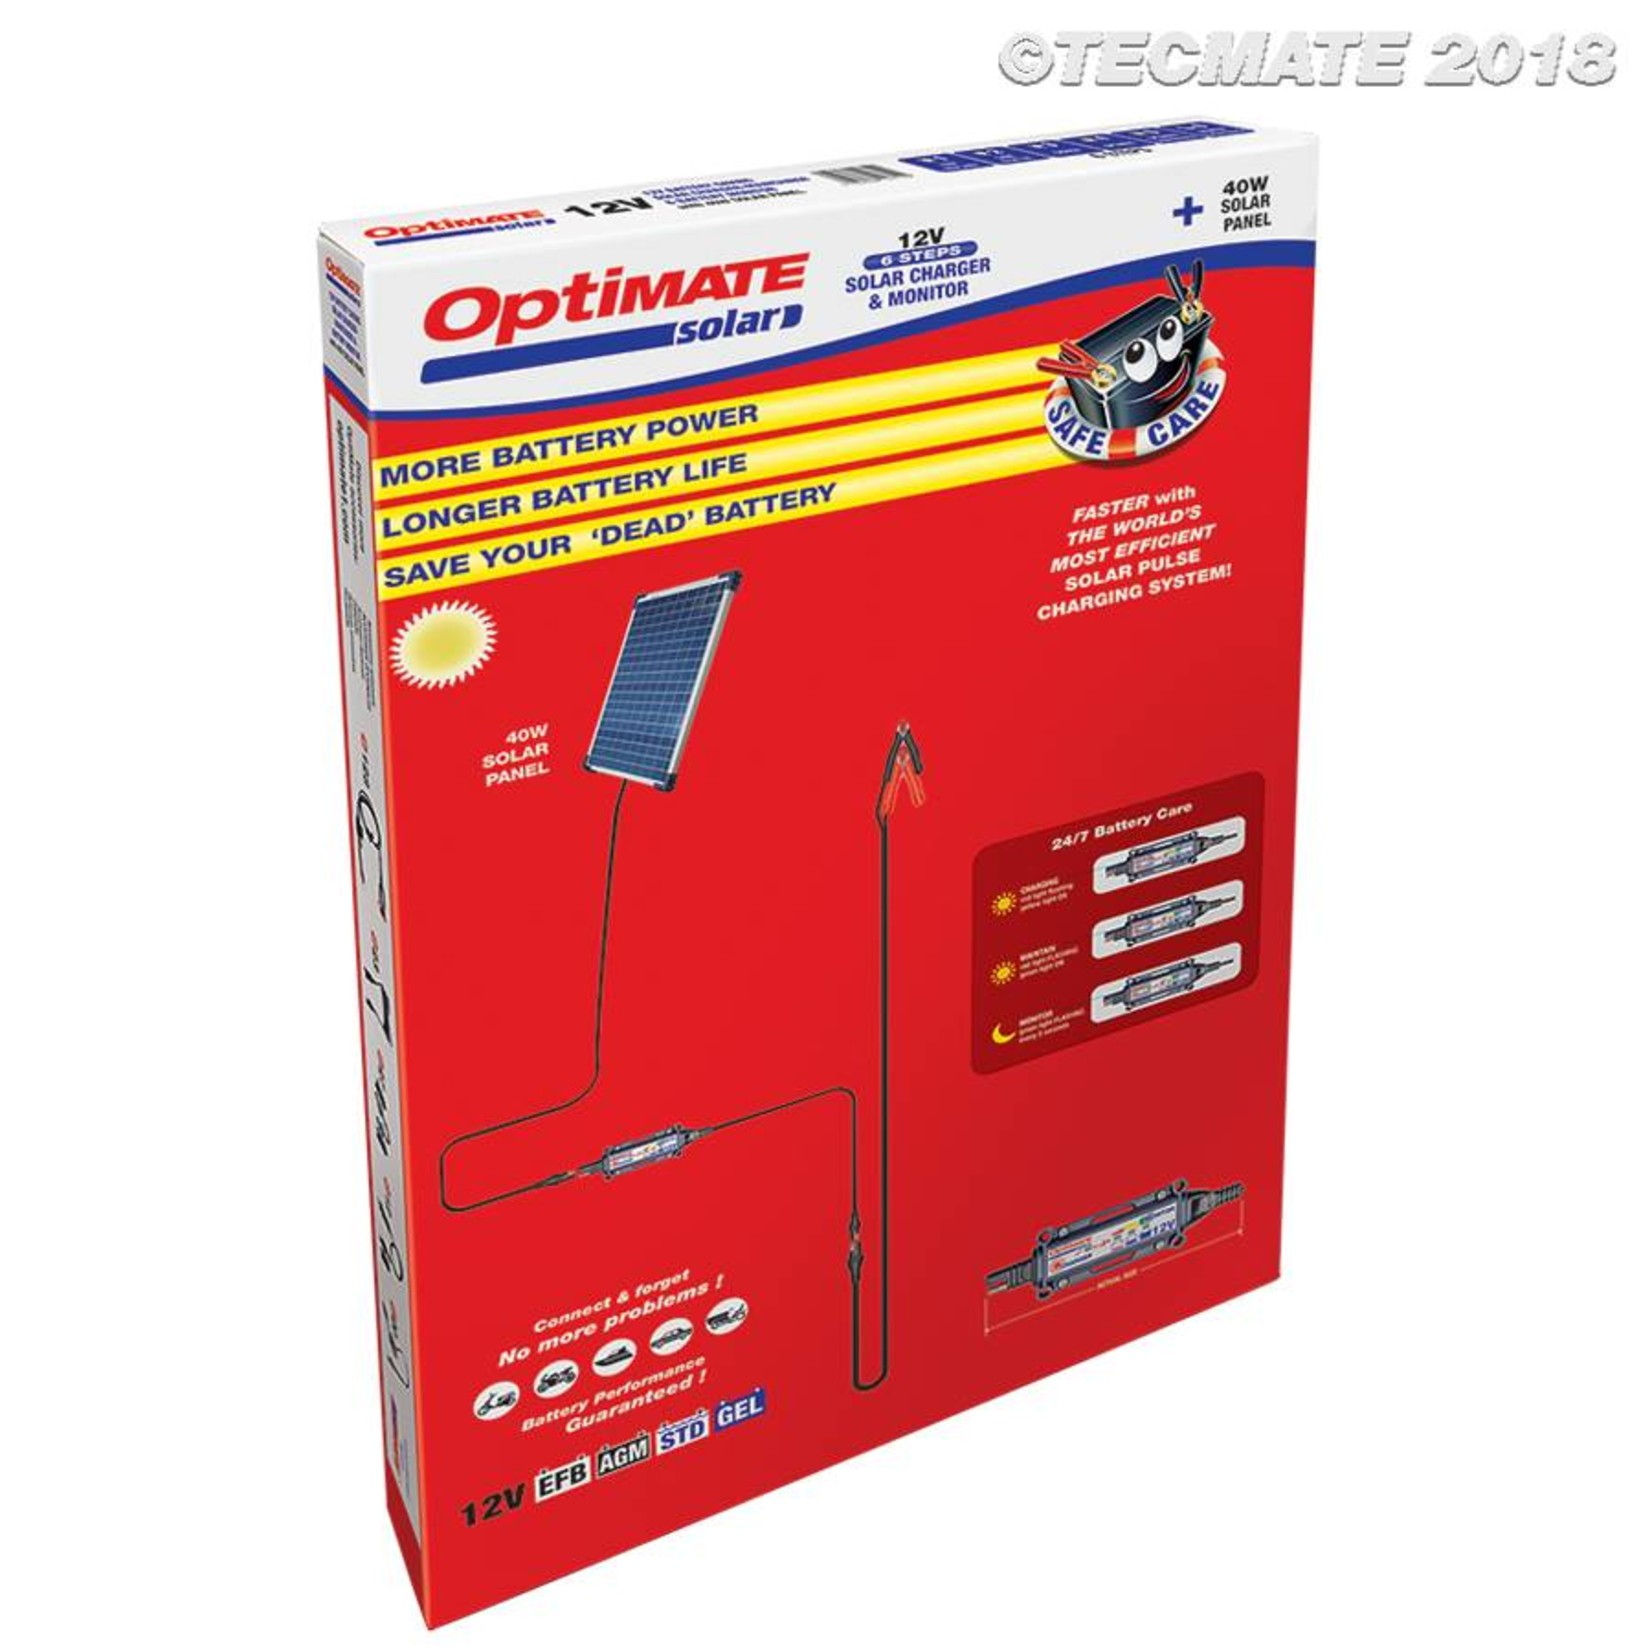 OptiMate Solar 40W - Acculader